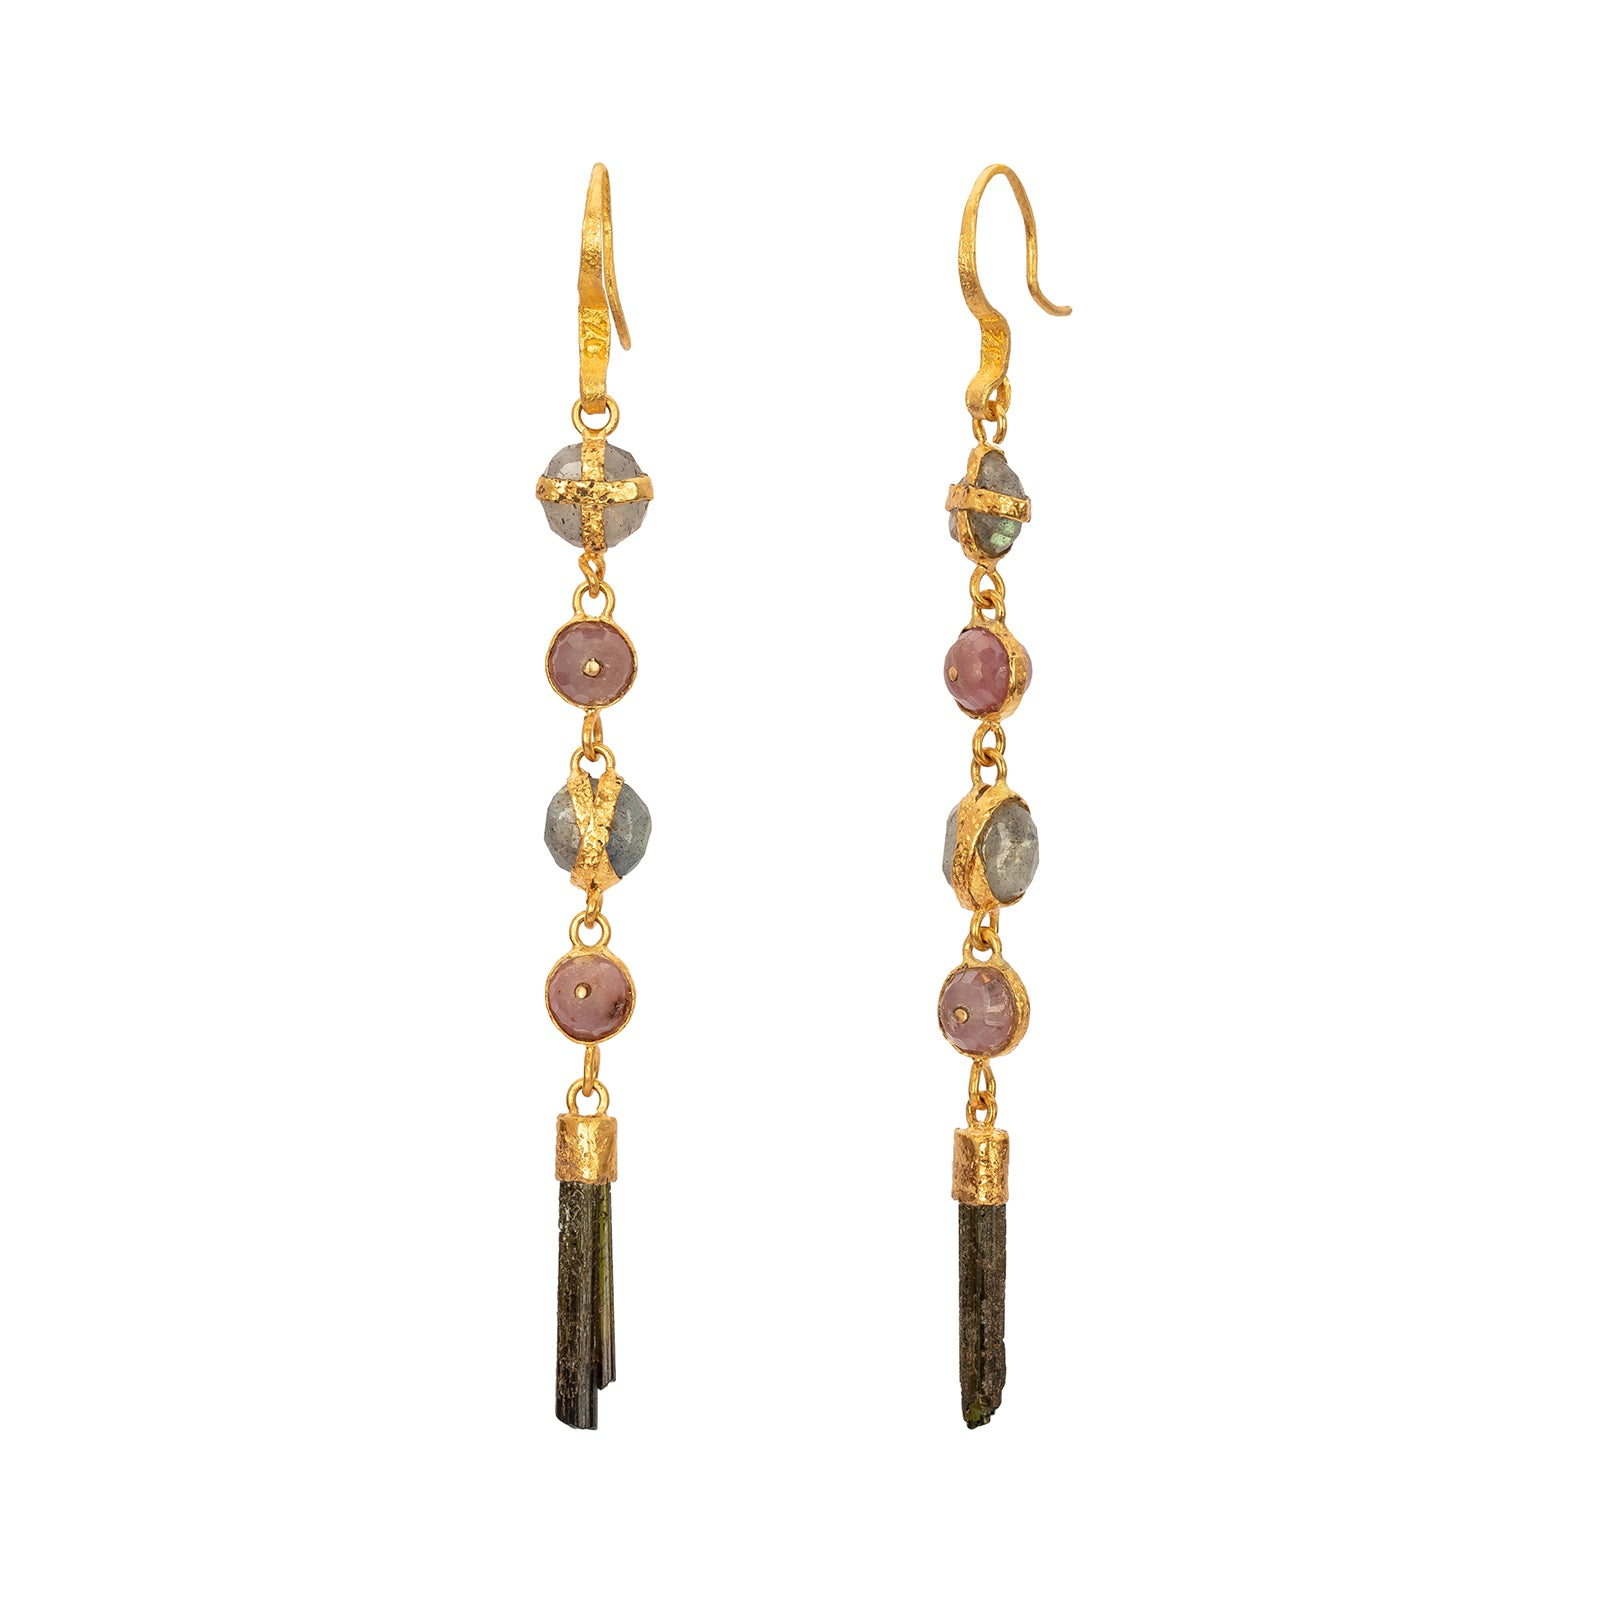 Lou Zeldis Five Drop Ruby & Sapphire & Tourmaline Earrings - Earrings - Broken English Jewelry